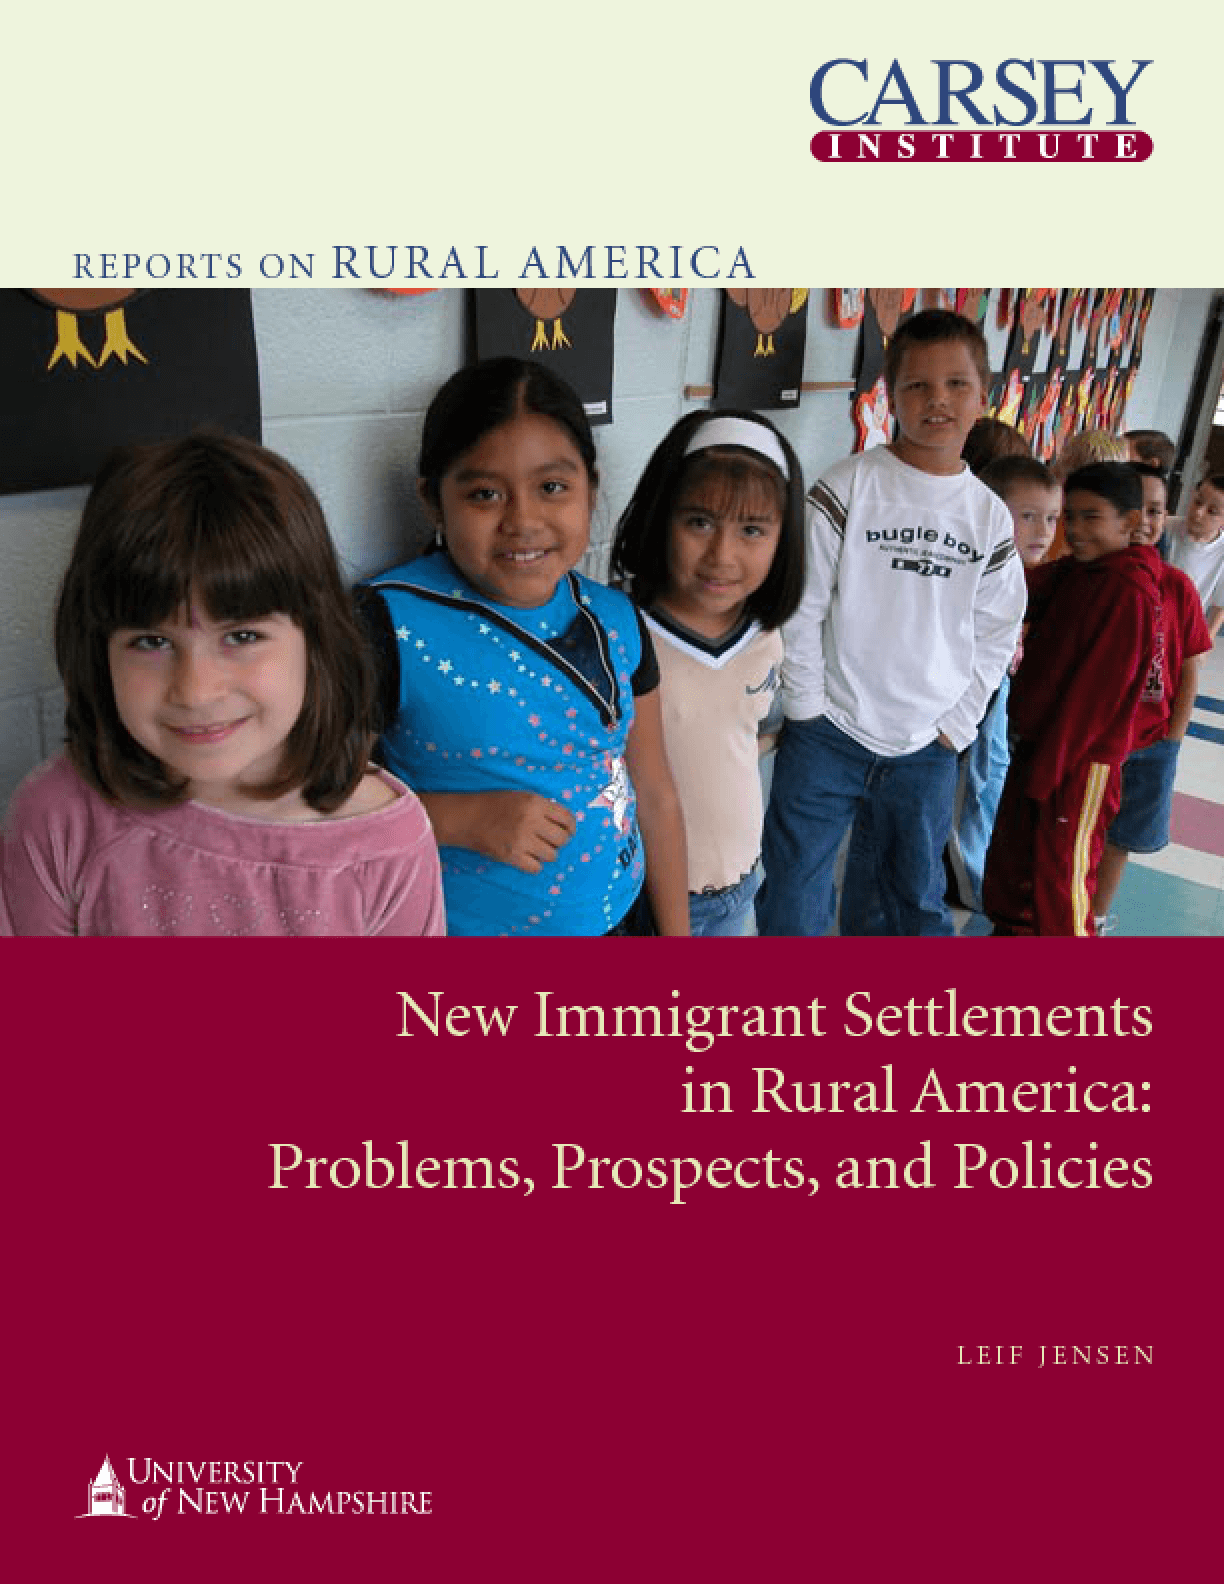 New Immigrant Settlements in Rural America: Problems, Prospects, and Policies